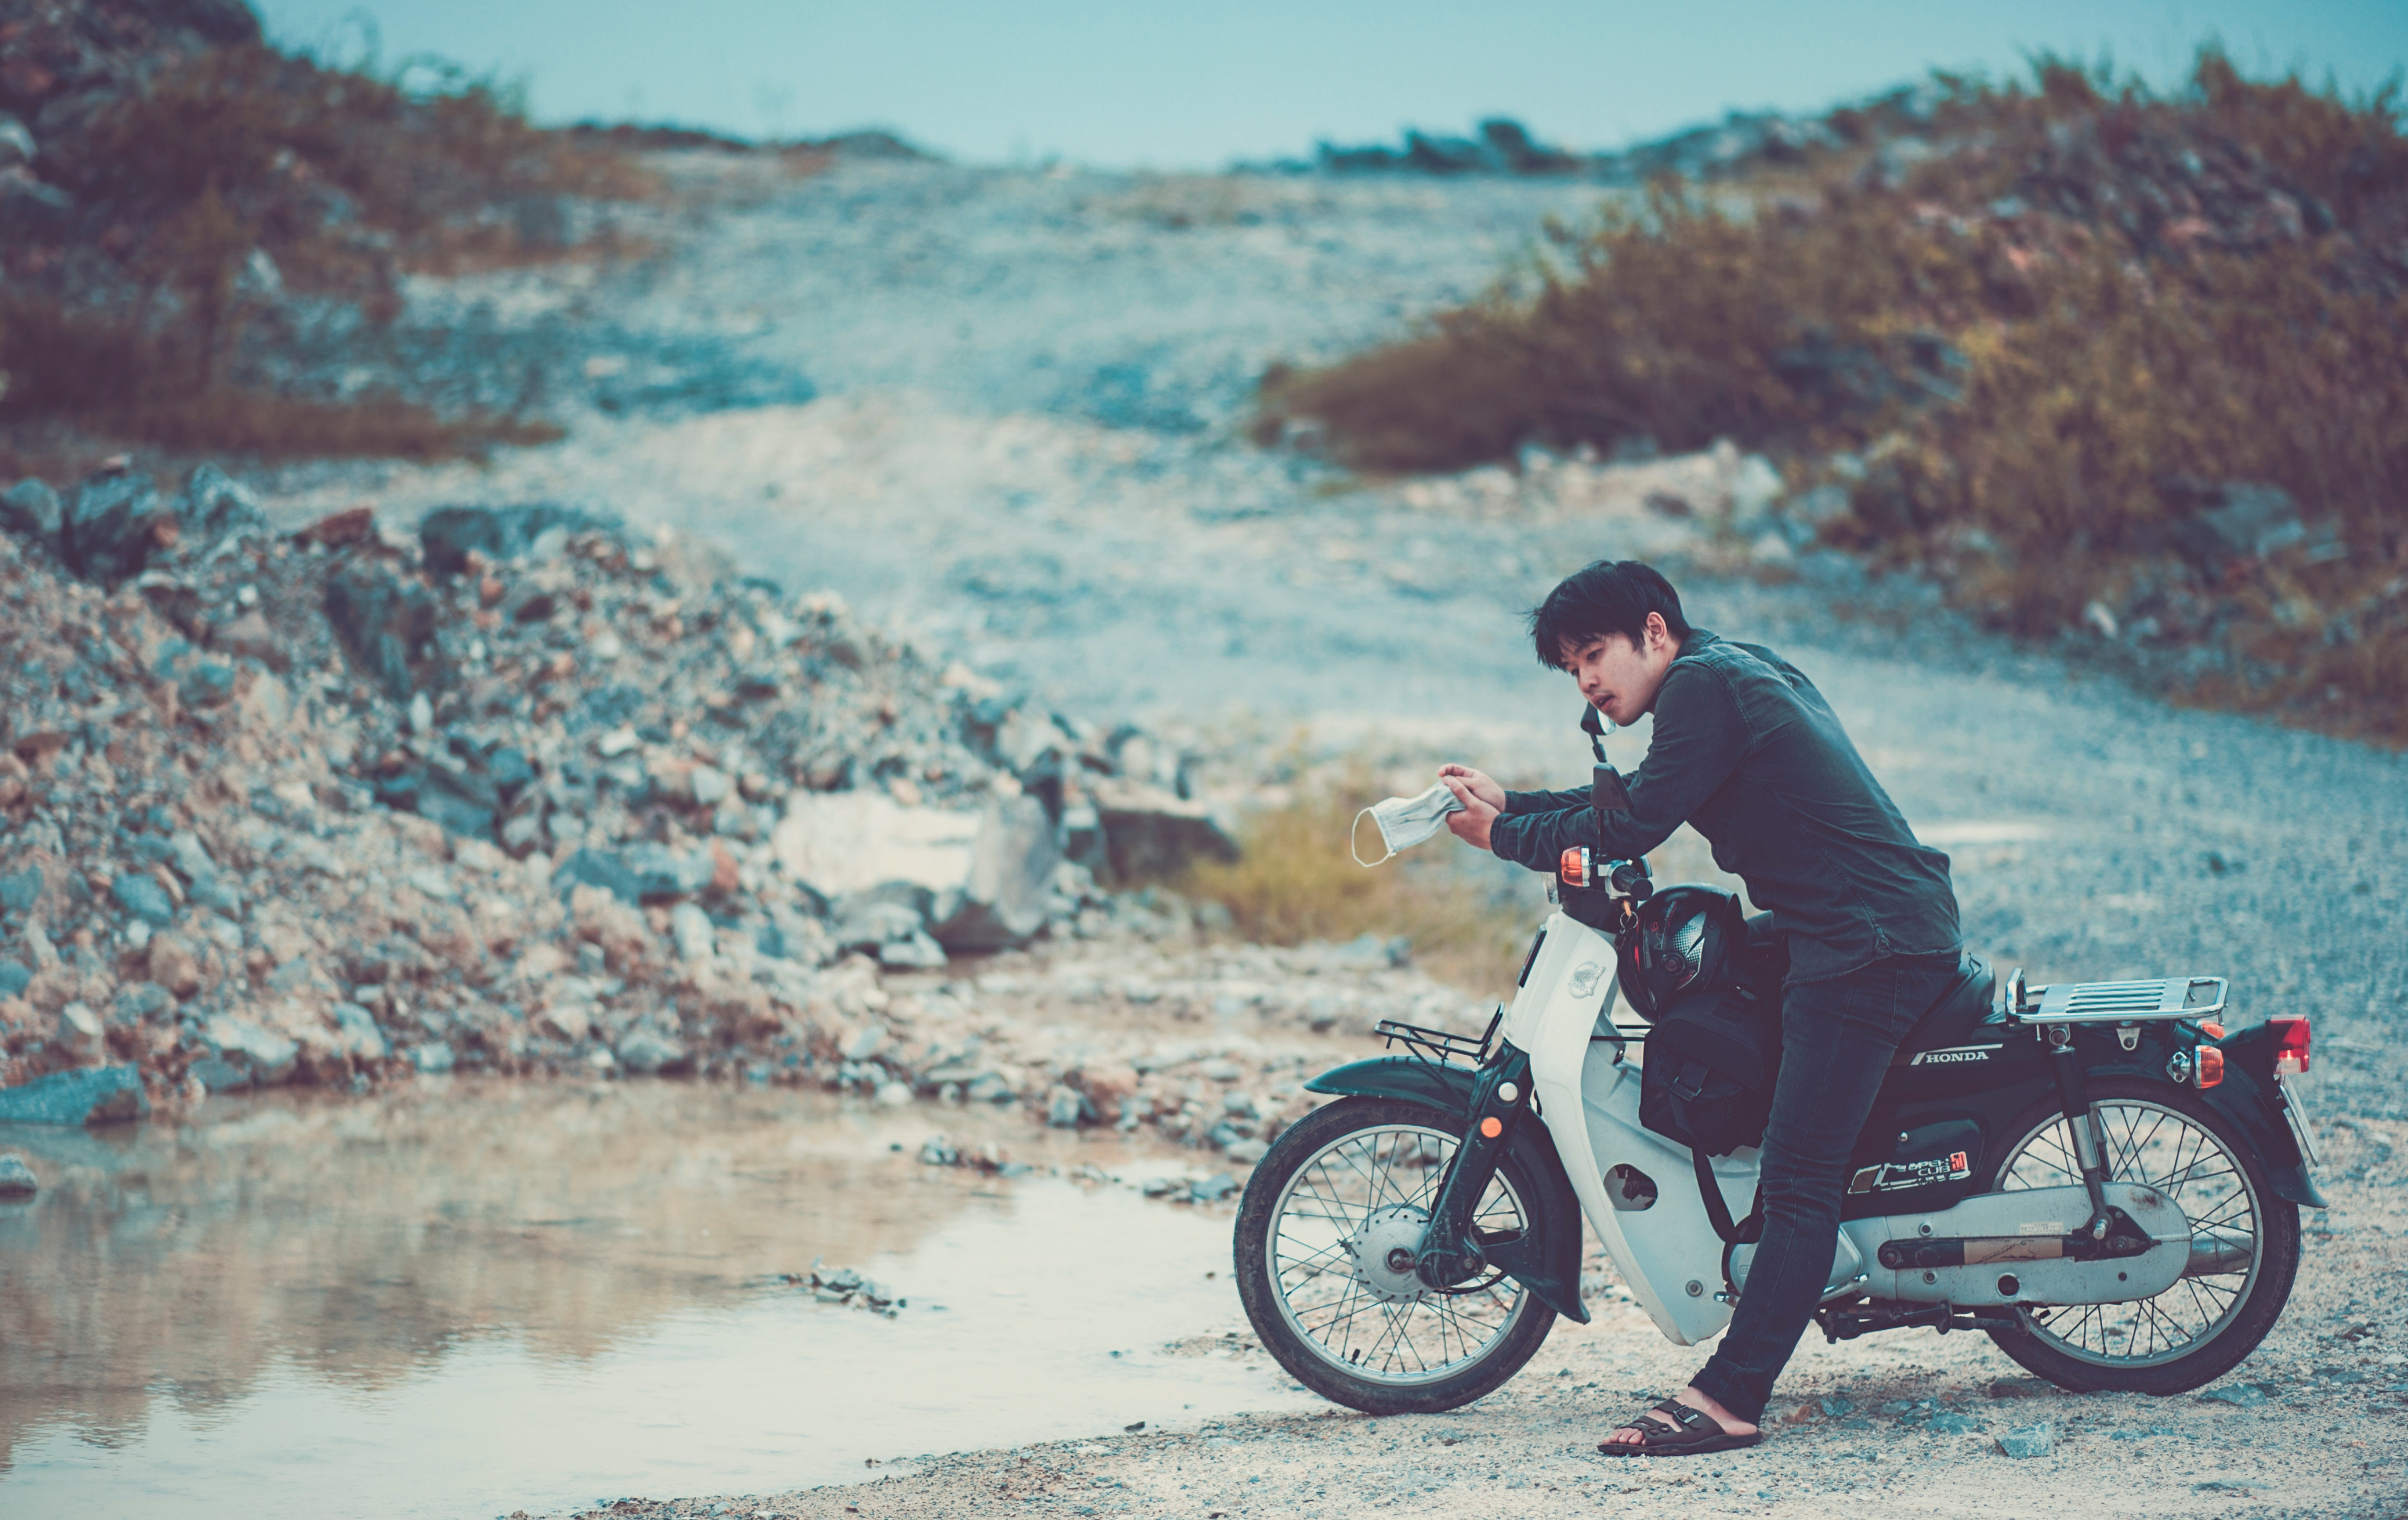 Man Riding a Motorcycle, Adult, Plants, Travel, Transportation system, HQ Photo